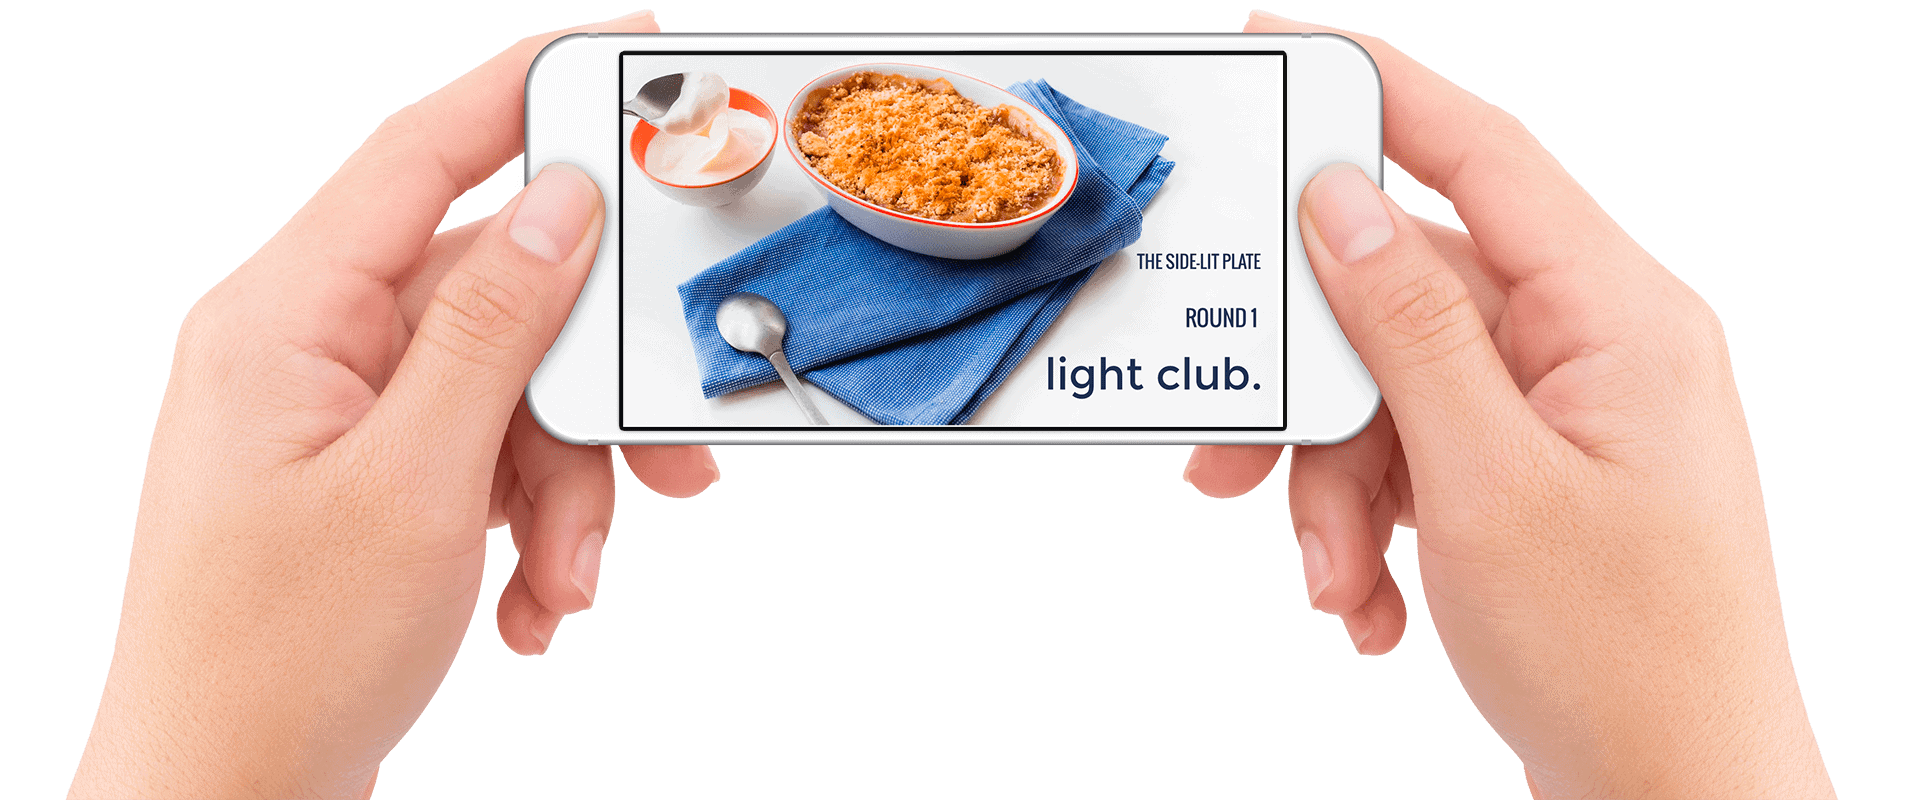 Learn how to take great food photos with Light Club Round One photography course